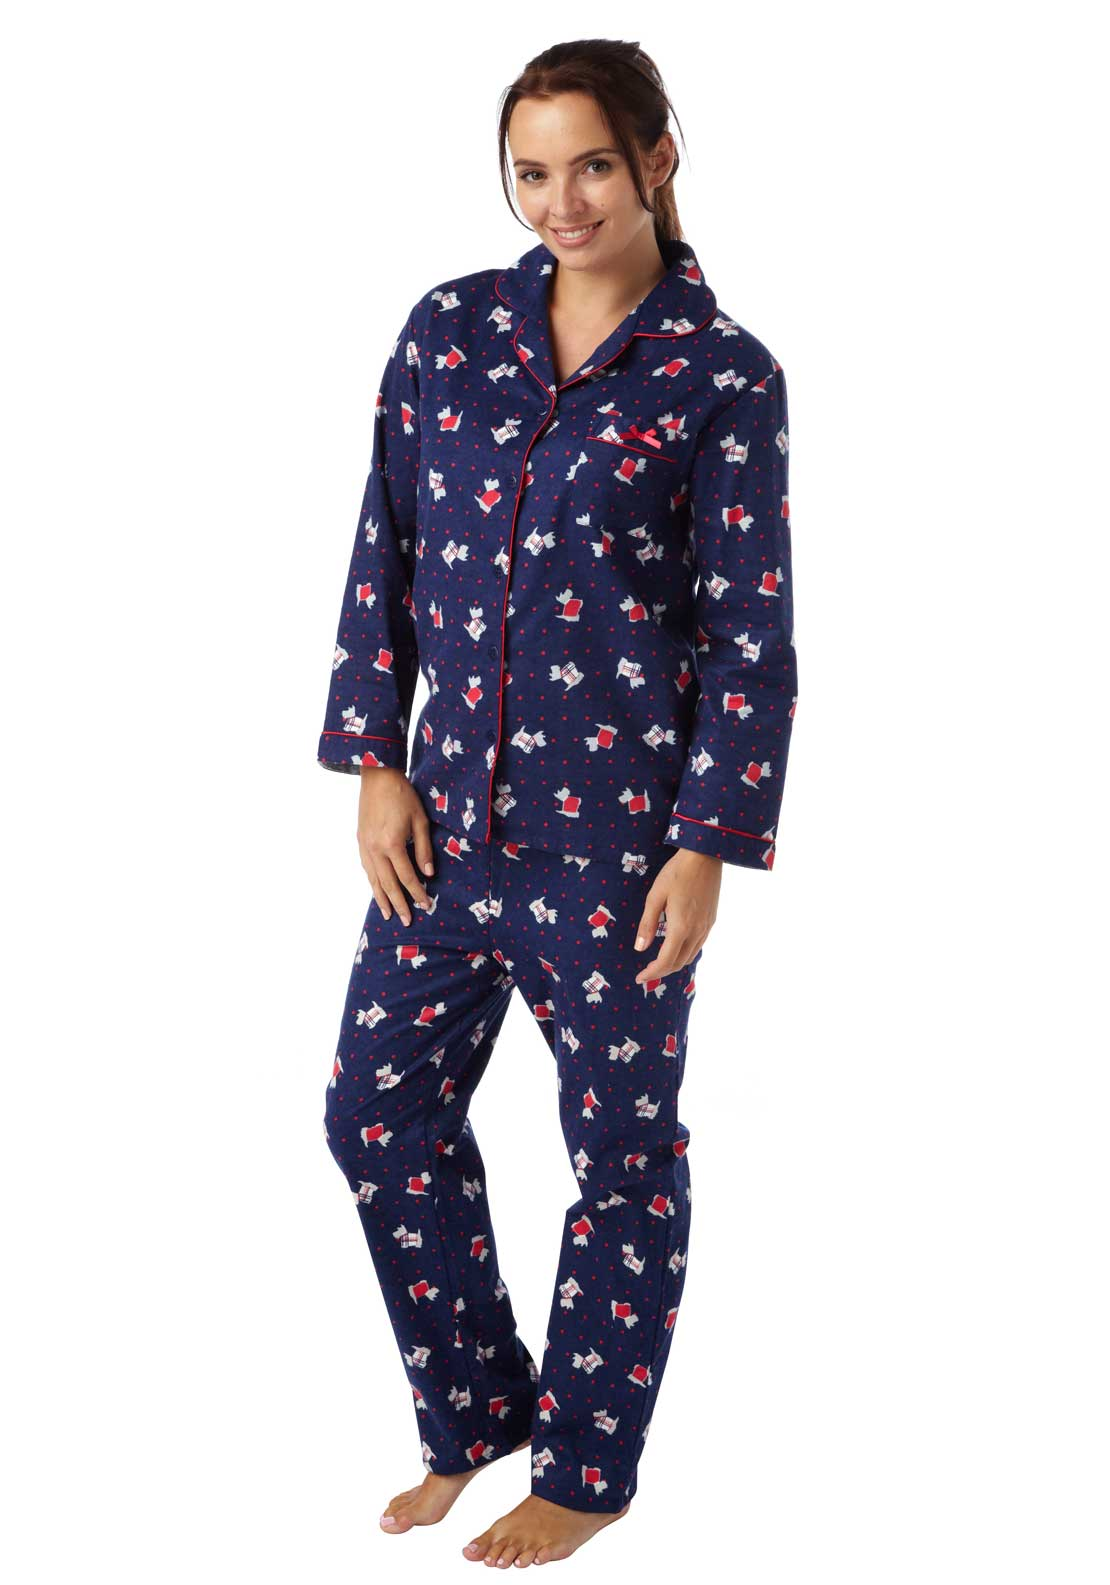 Indigo Sky Scotty Dog Print Pyjama Set, Navy